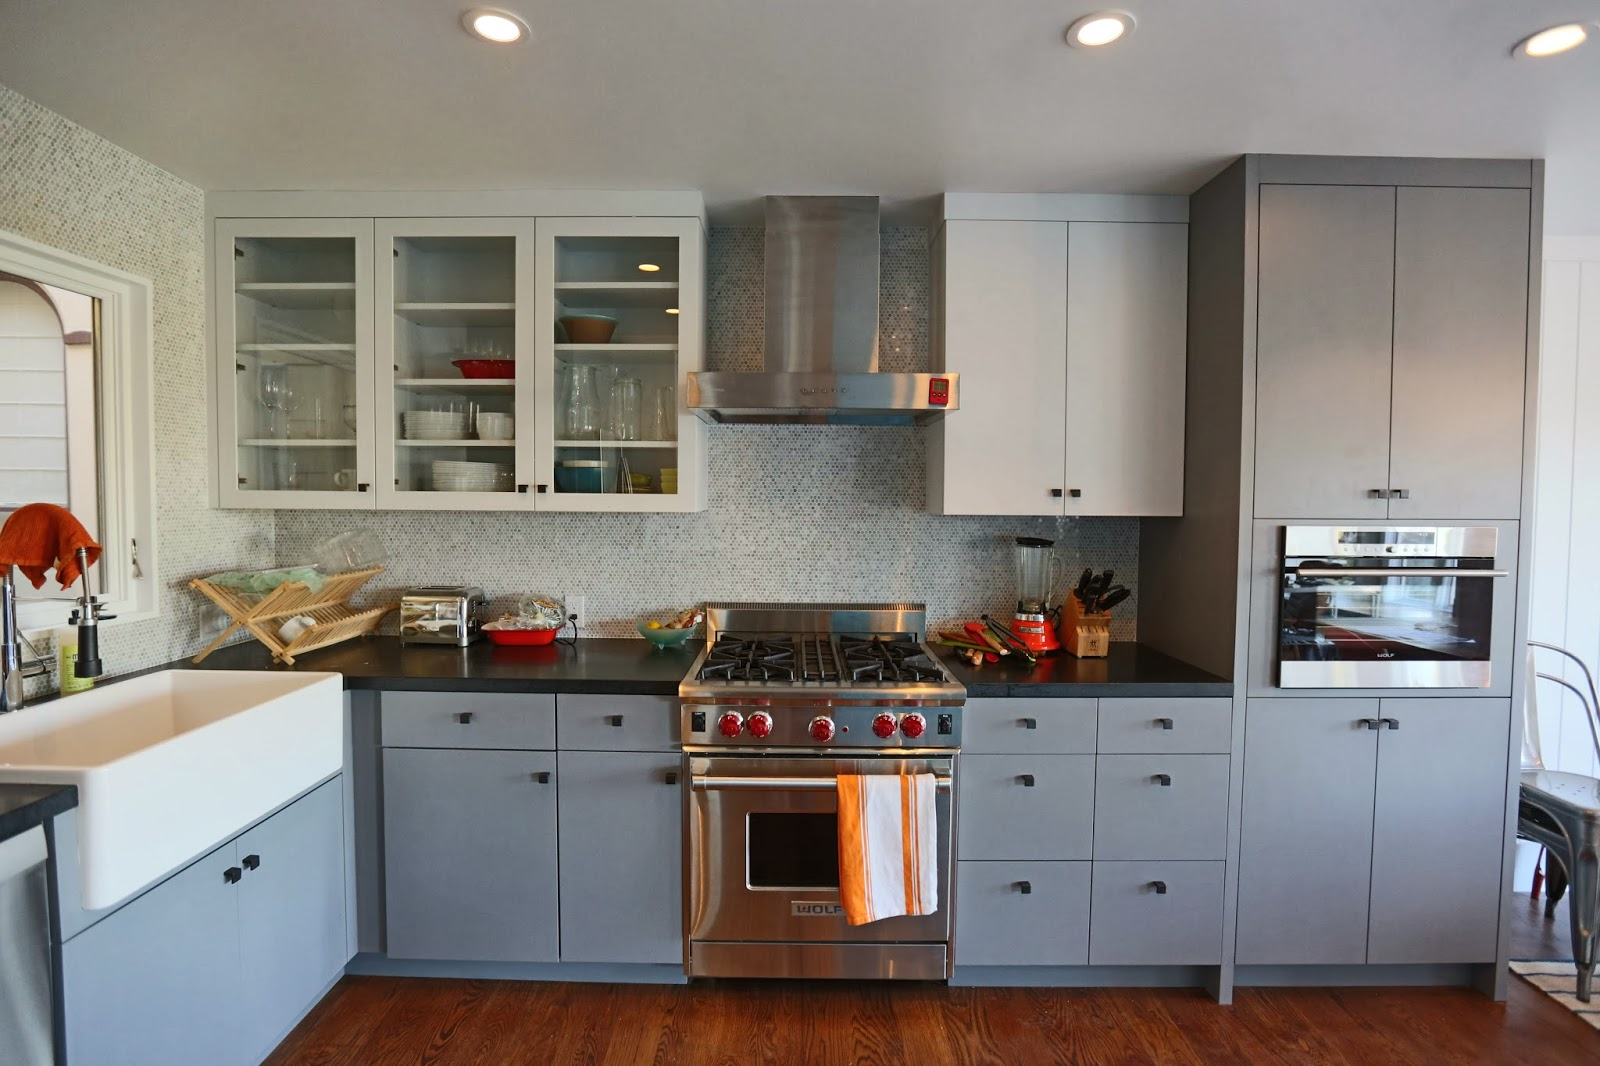 duboce park residence san francisco quality kitchen